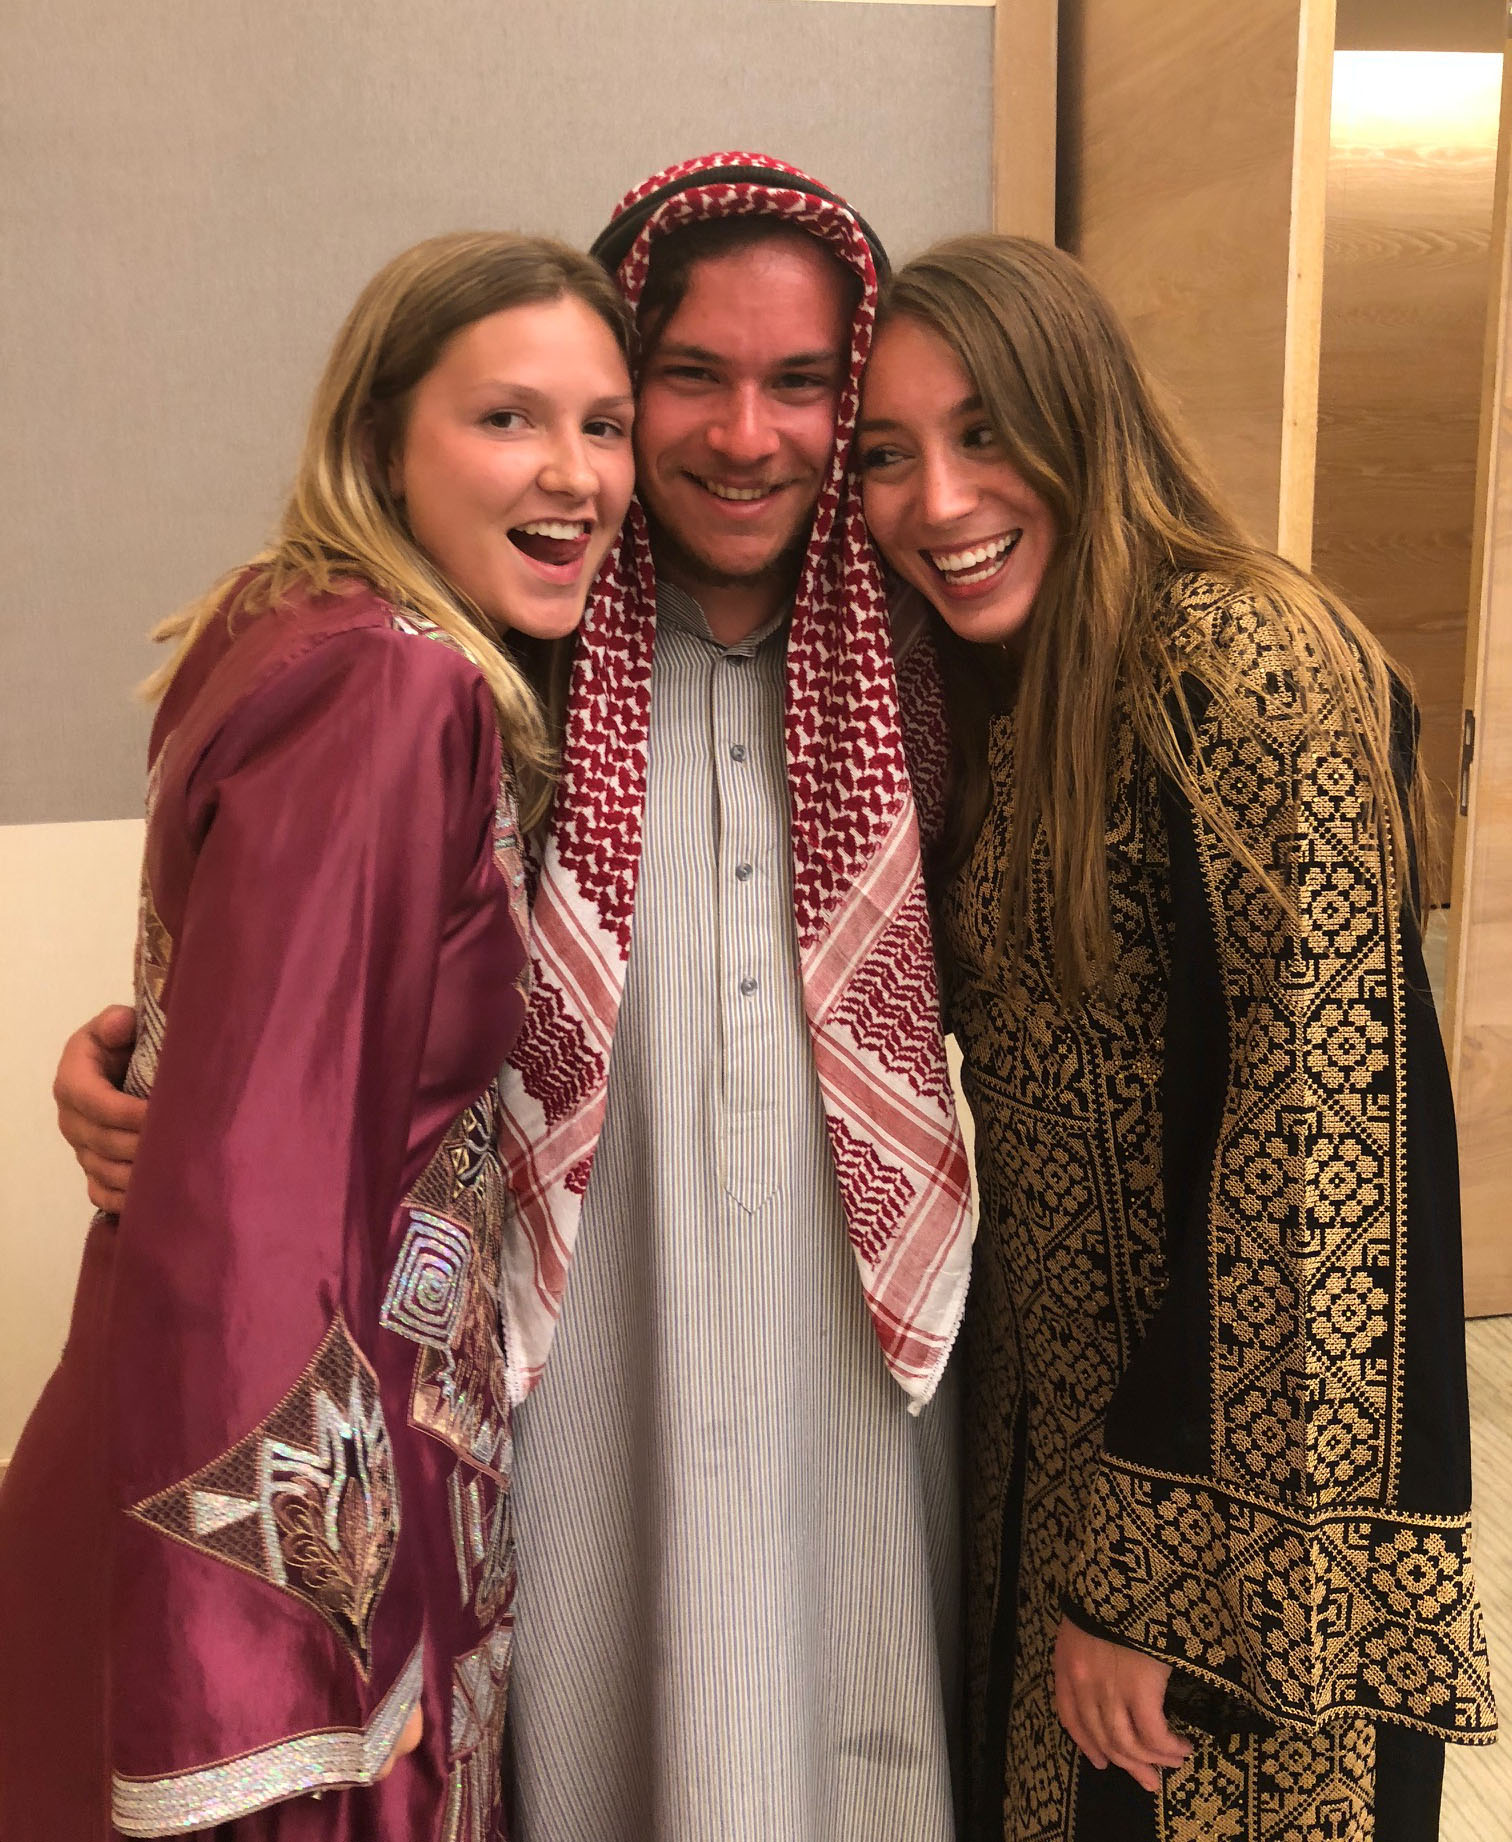 We also had a traditional Jordanian wedding hosted by our Arabic professors. Photo credit: Arguin, 2019